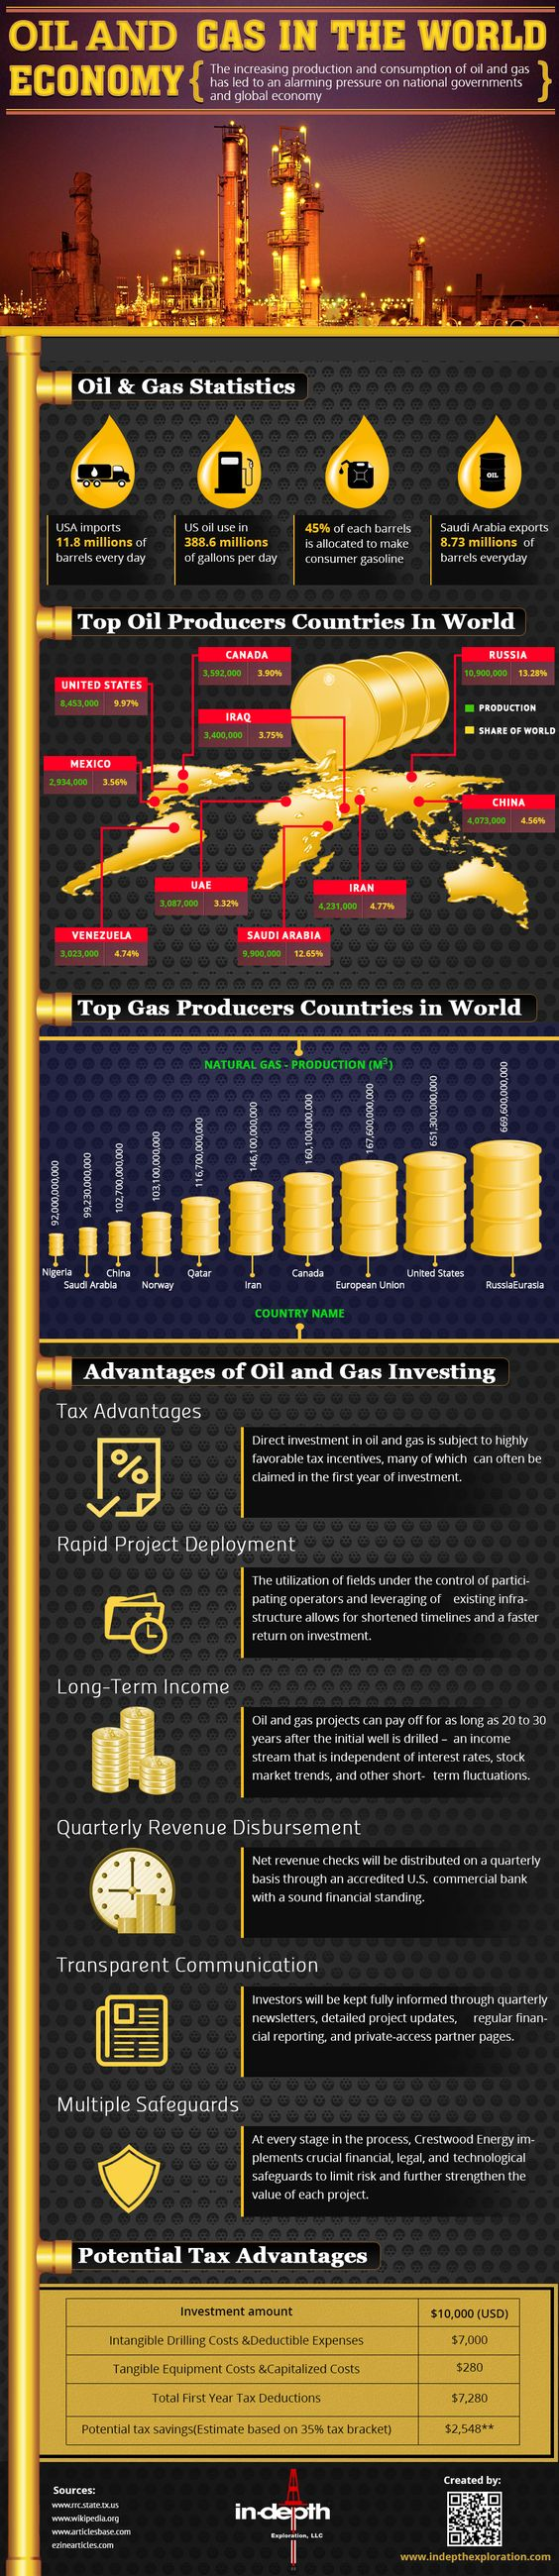 oil and gas in the world Economy infographic